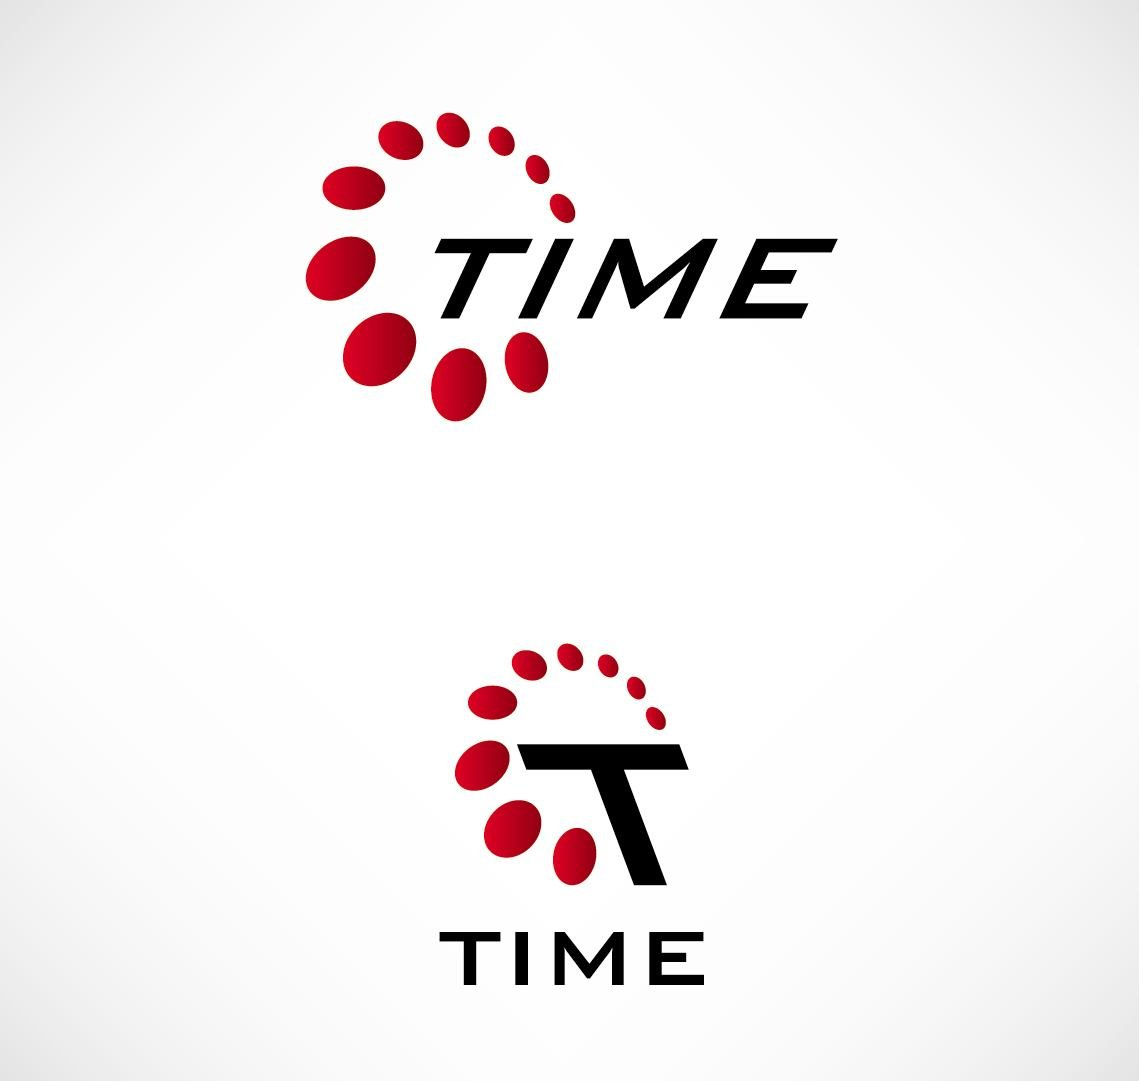 guerra creativa t time logo 02